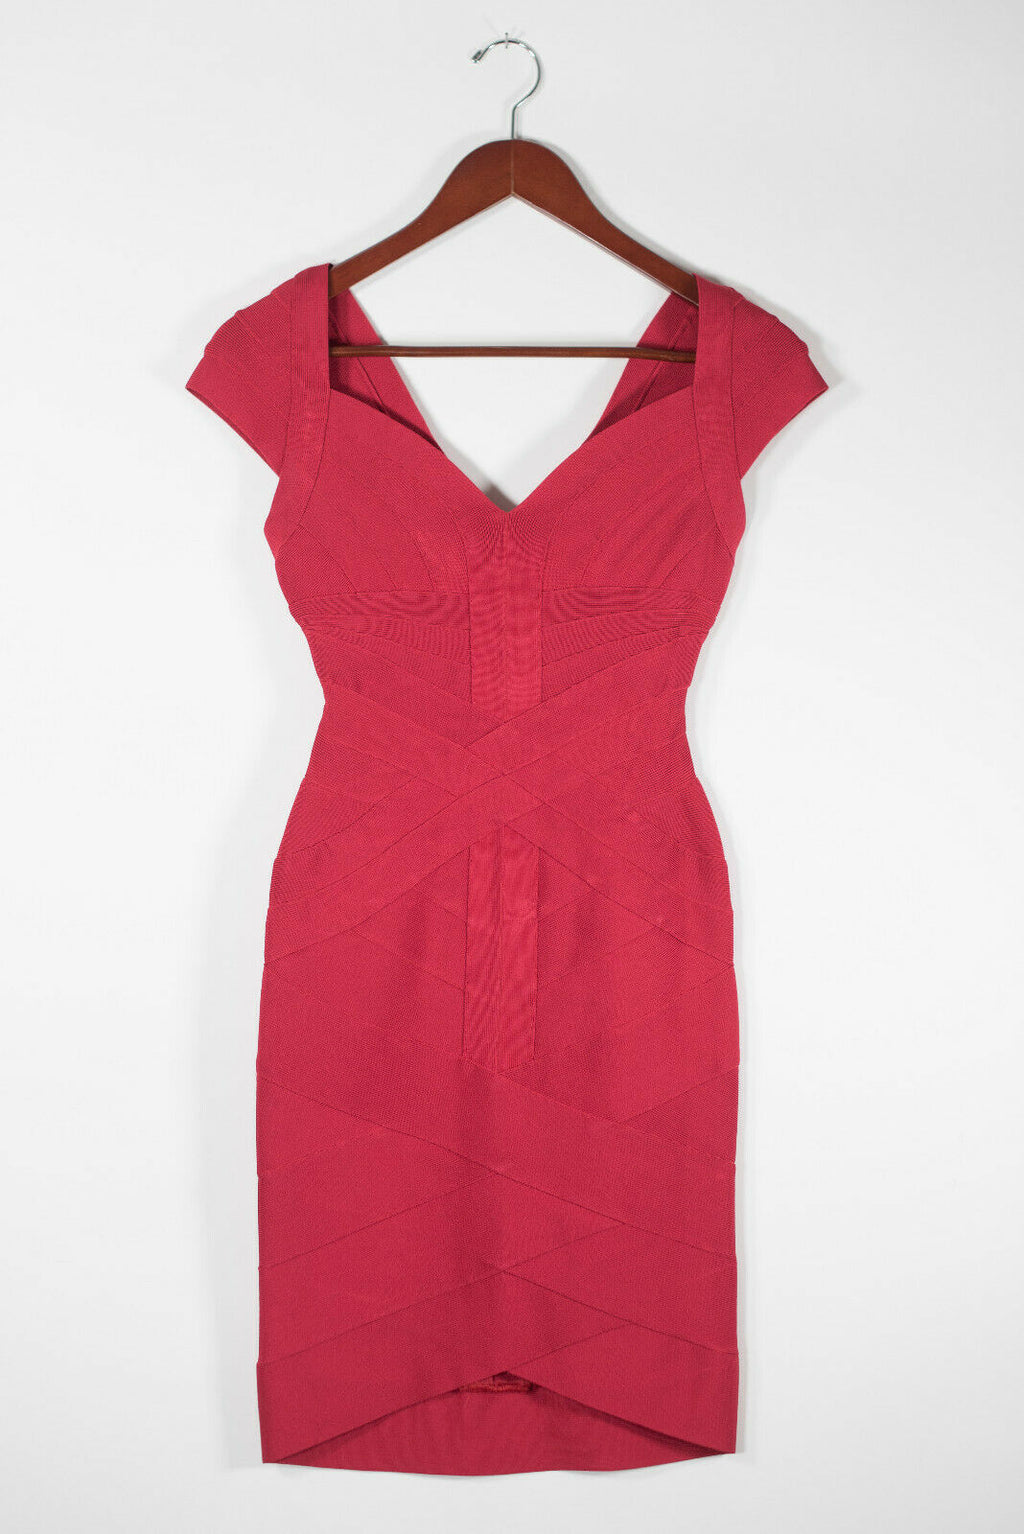 Herve Leger Womens XS Red Dress Bandage Sweetheart Neck Cap Sleeve Stretch Mini